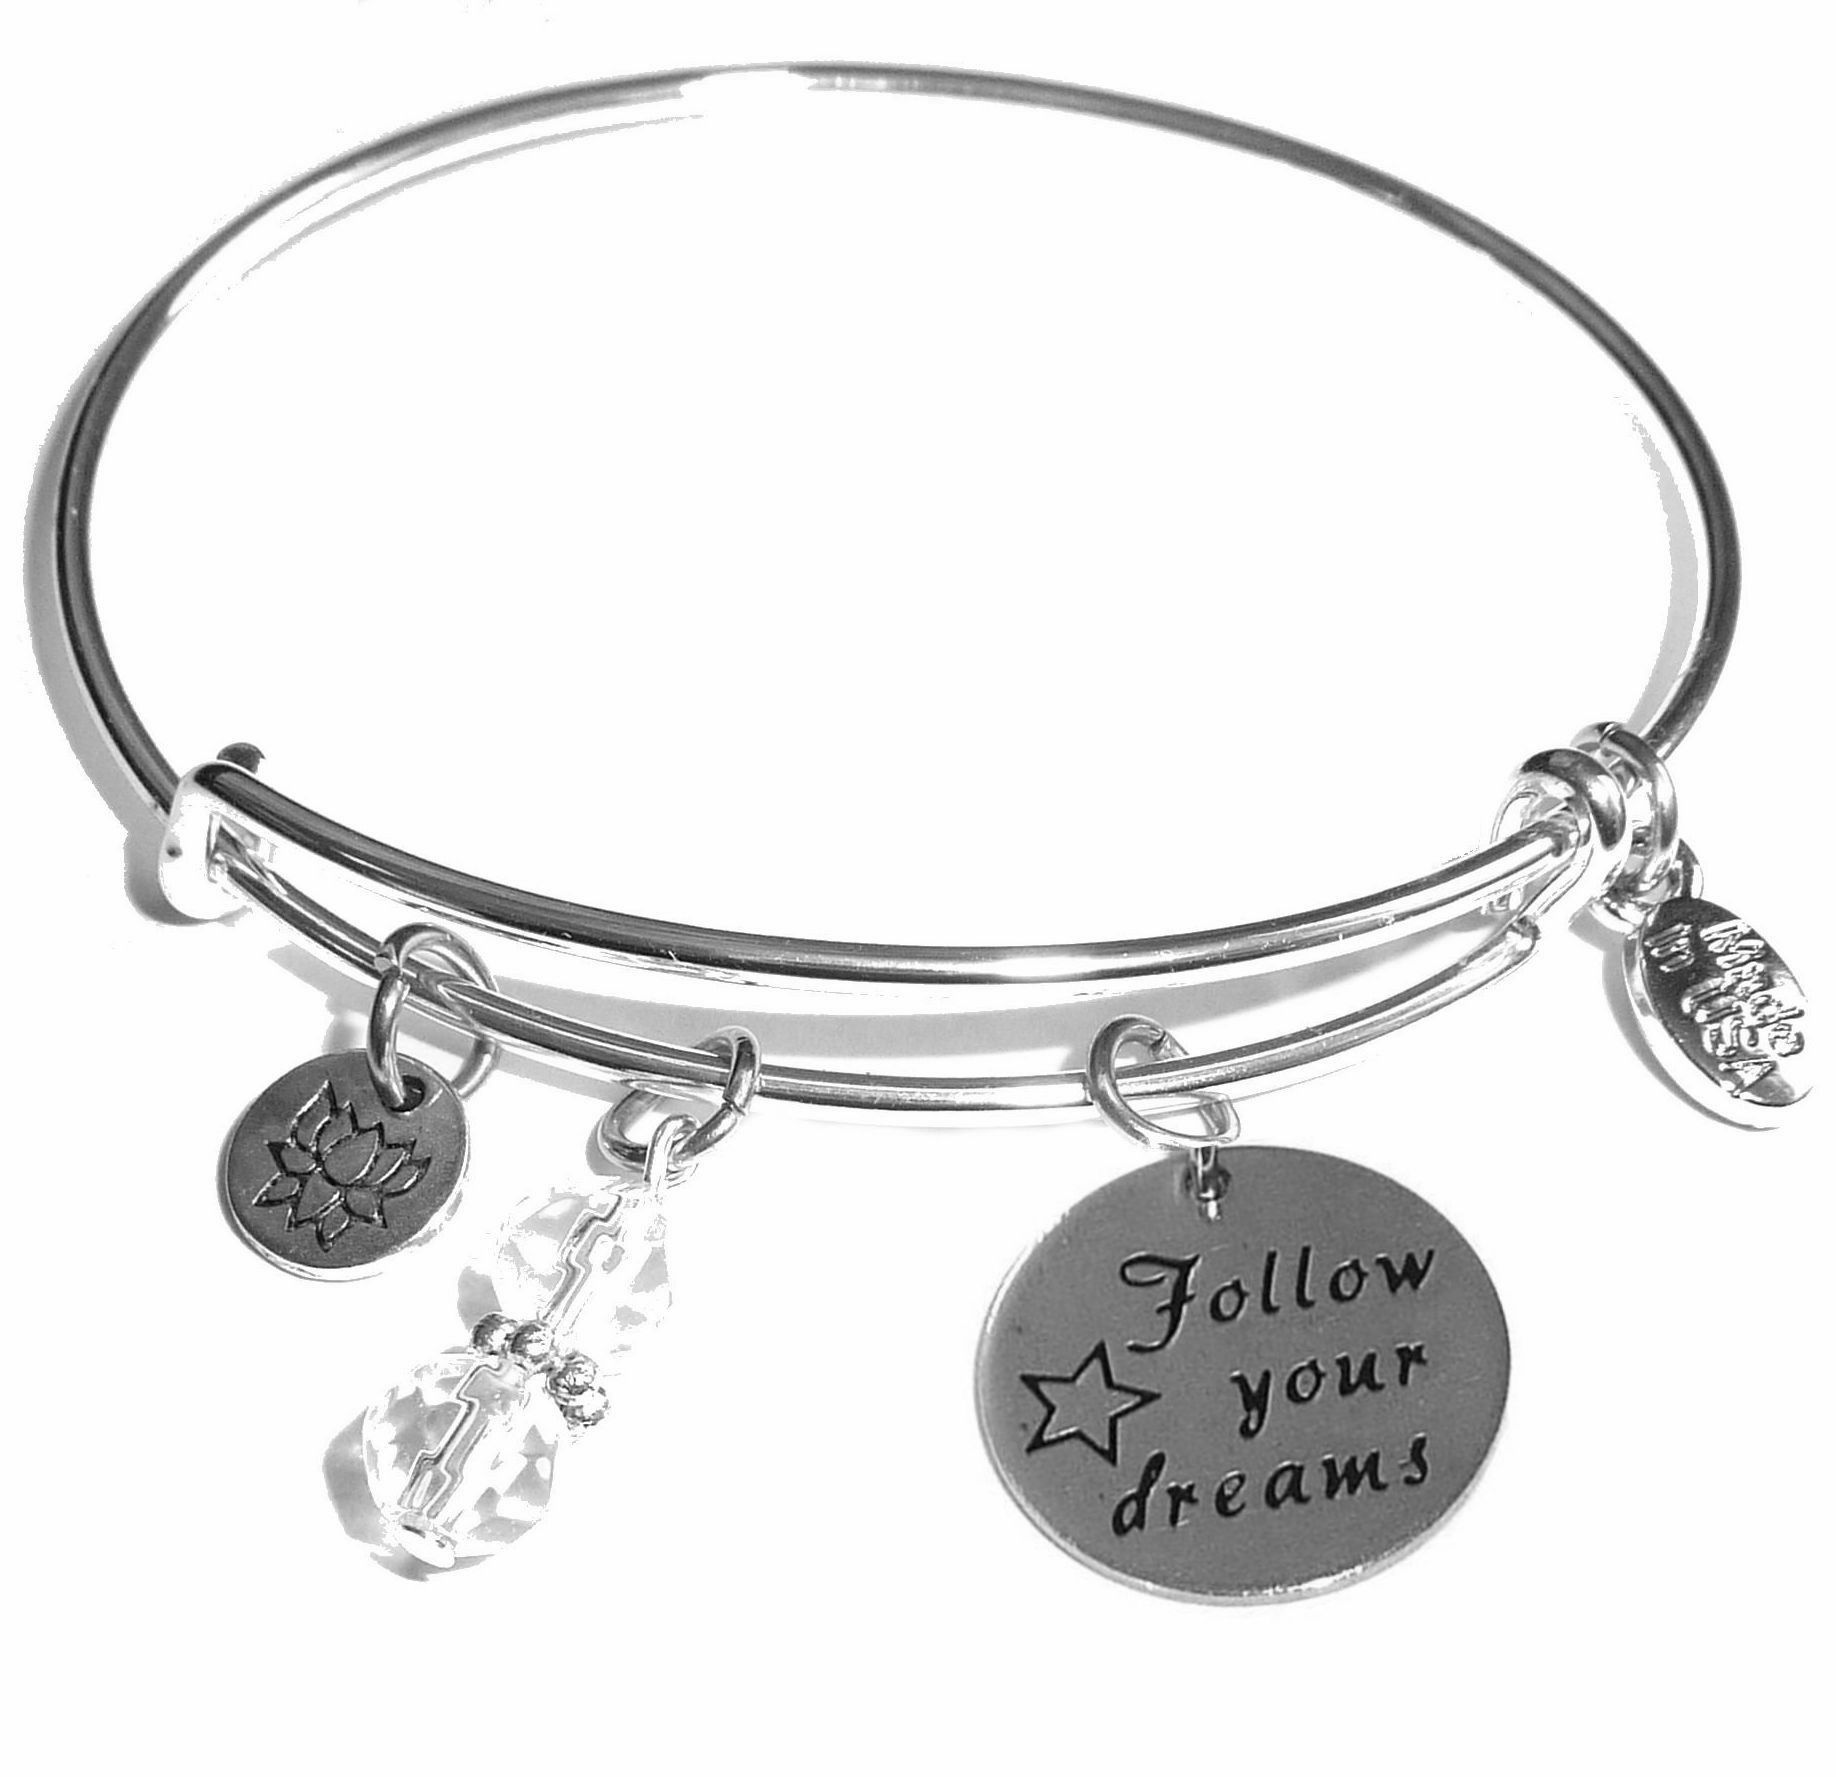 Follow Your Dreams Message Bangle Bracelet Expandable Wire Comes In A Gift Box